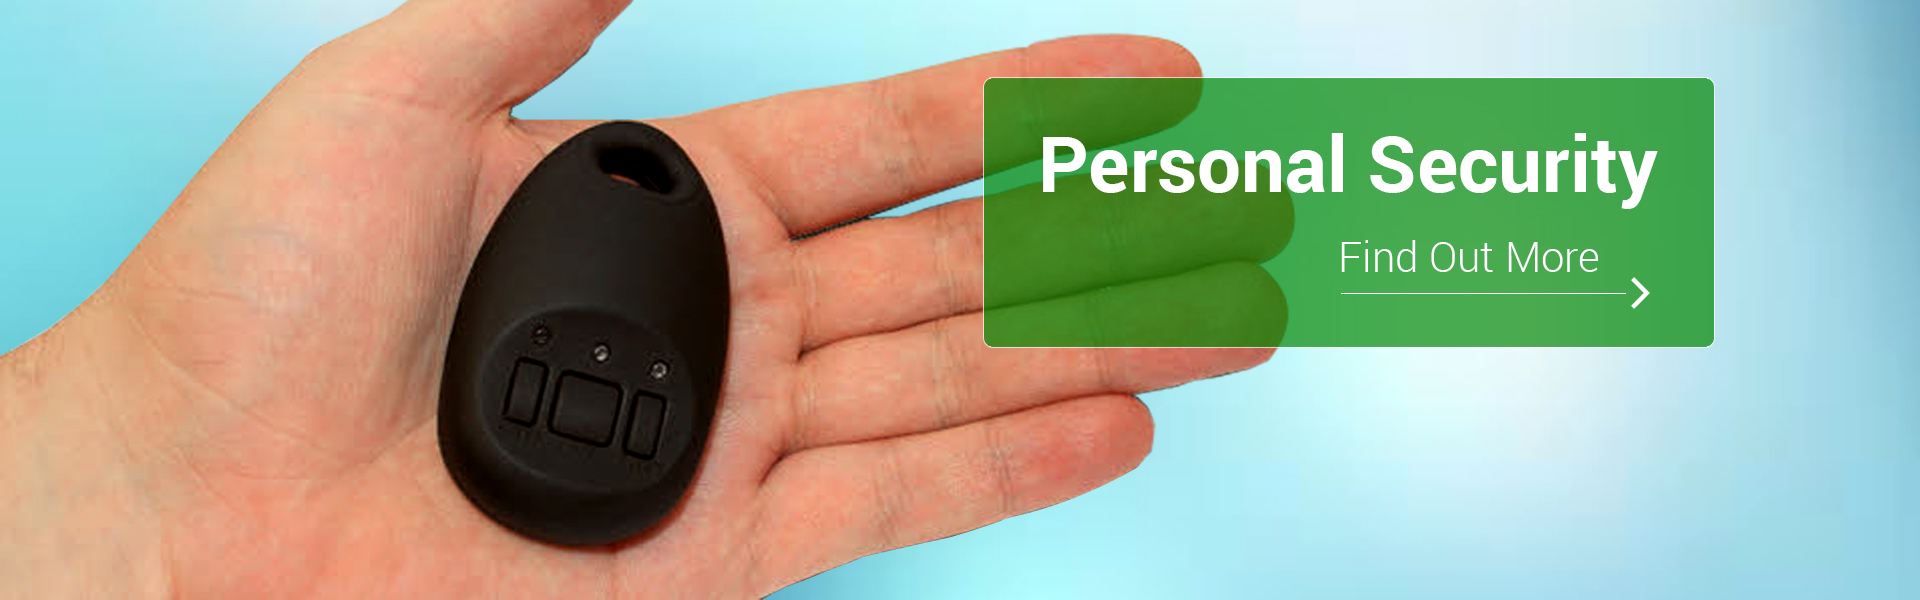 Personal security, open hand with panic device